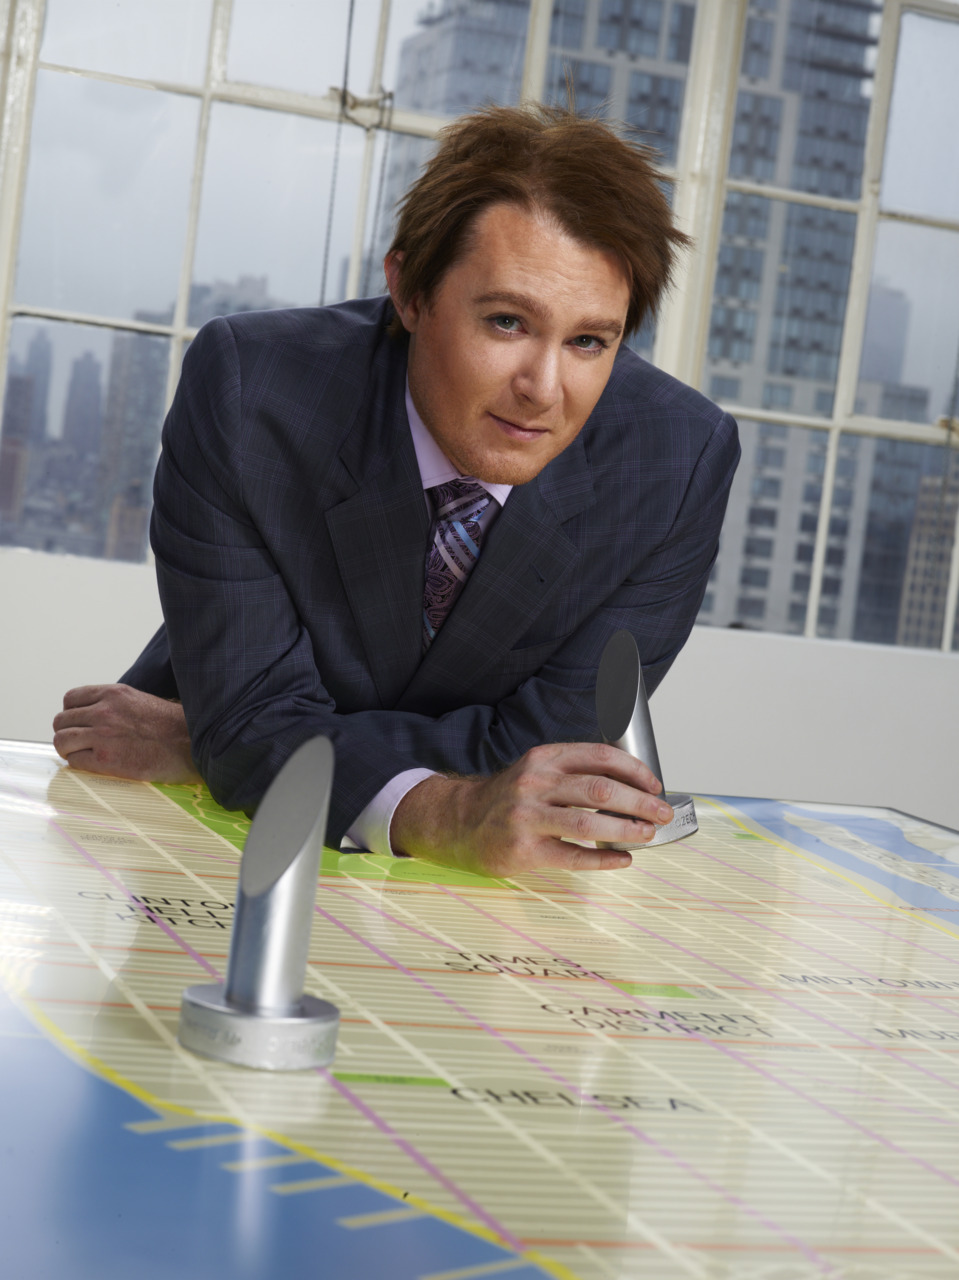 Celebrity Apprentice: Clay Aiken is Runner Up - Invisible ...